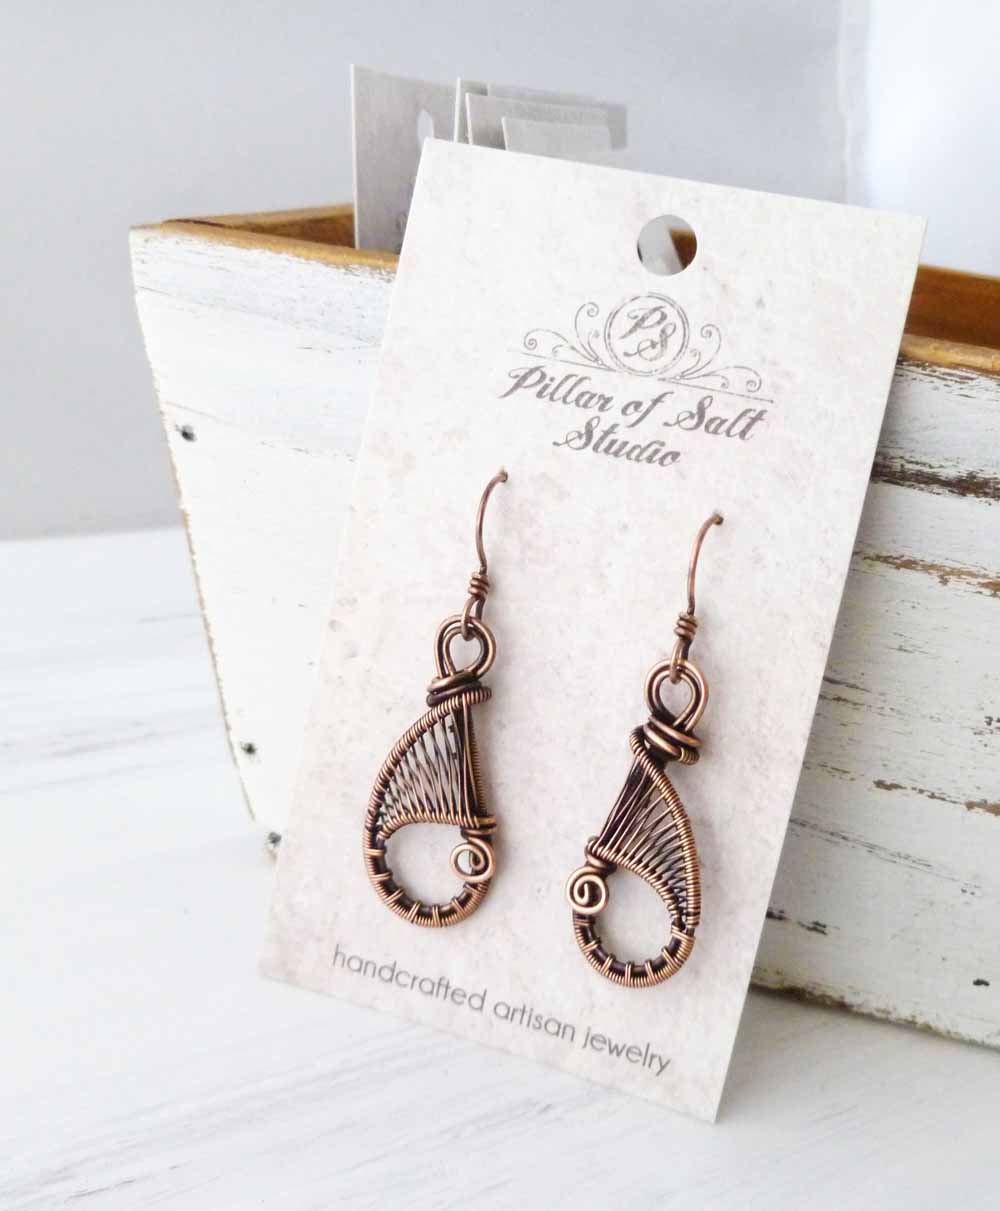 woven wire teardrop earrings copper jewelry by Pillar of Salt Studio